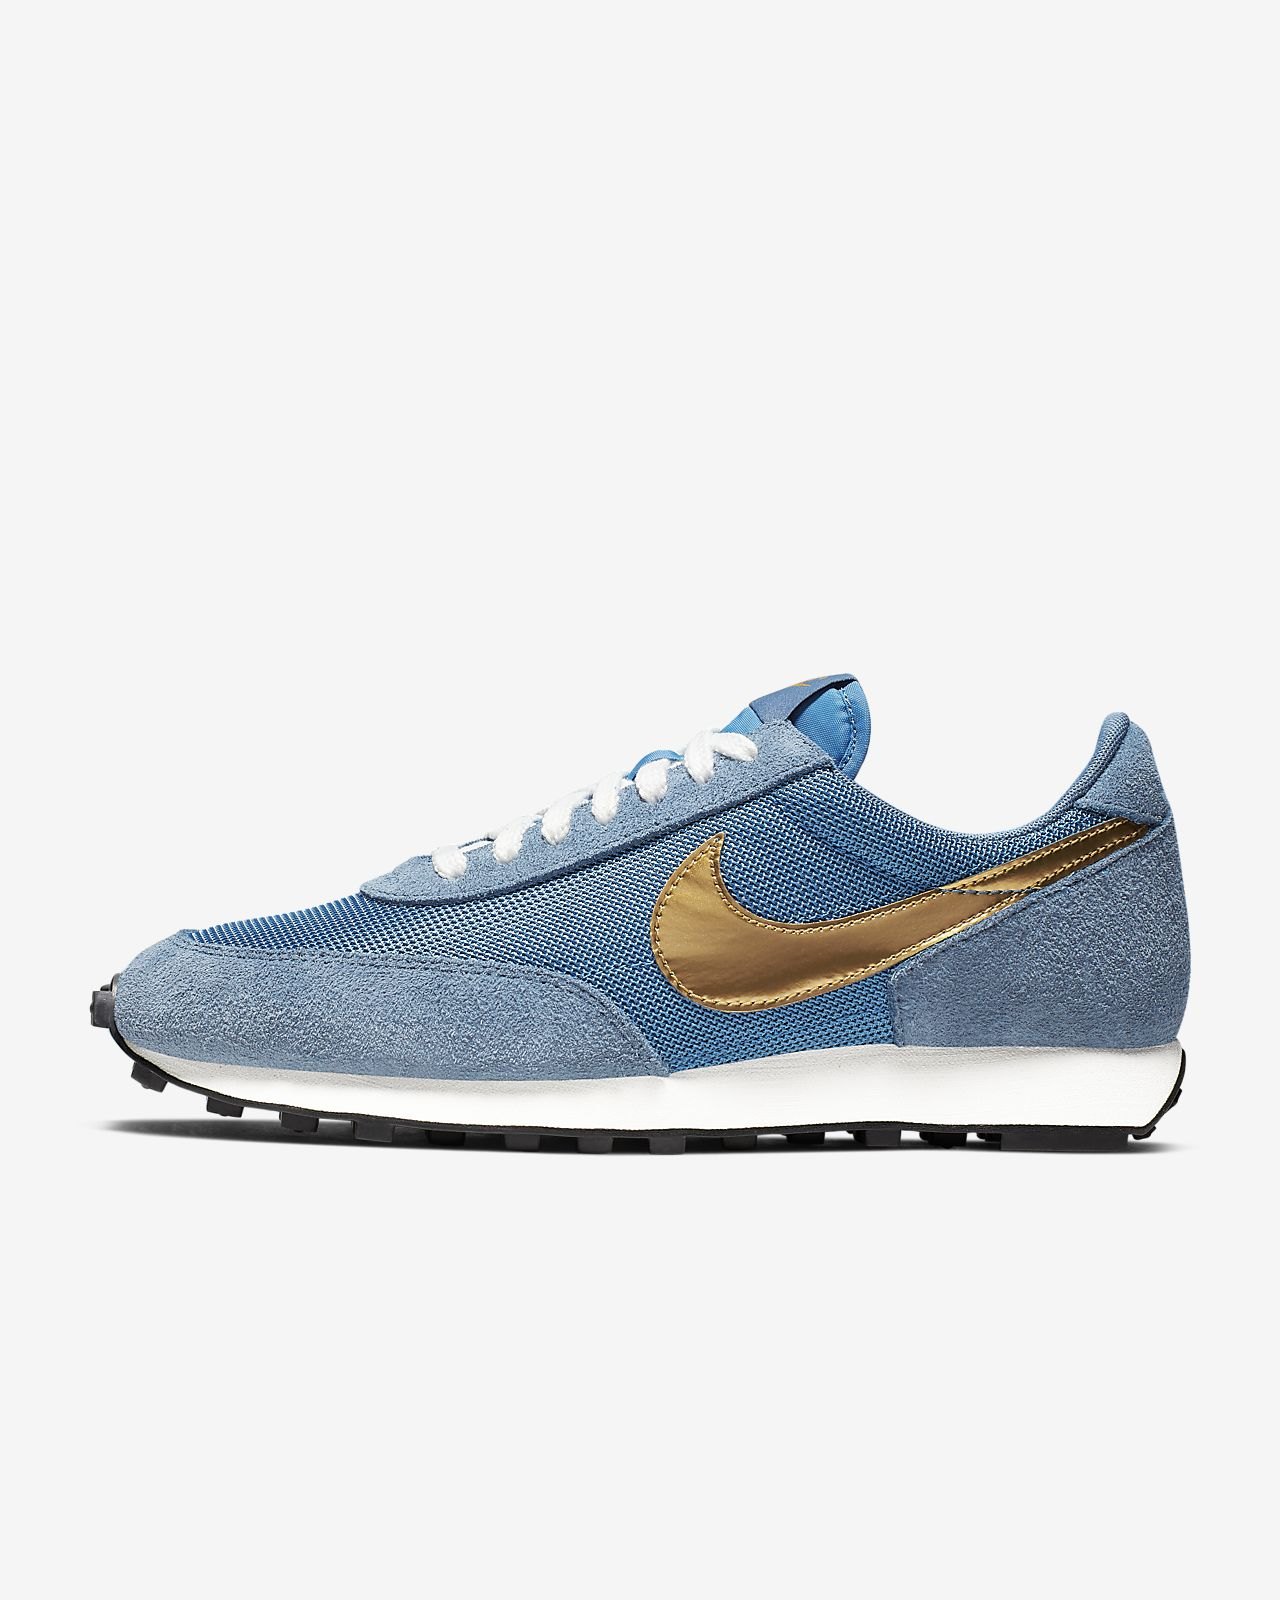 Nike Daybreak SP Men's Shoe